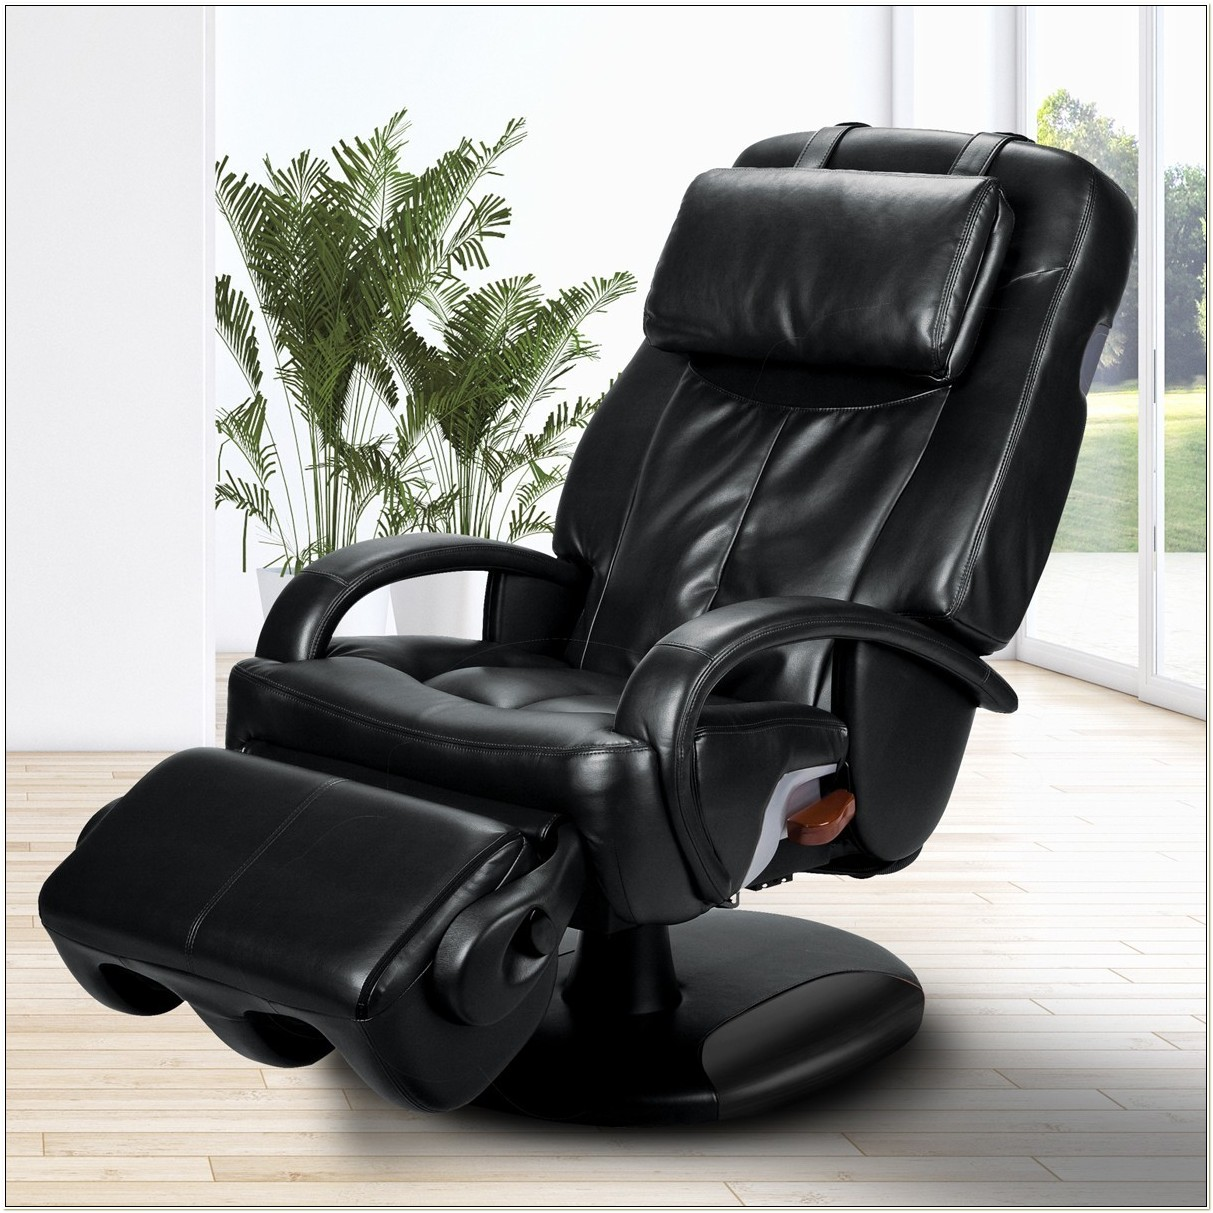 Thermostretch Ht 7120 Massage Chair